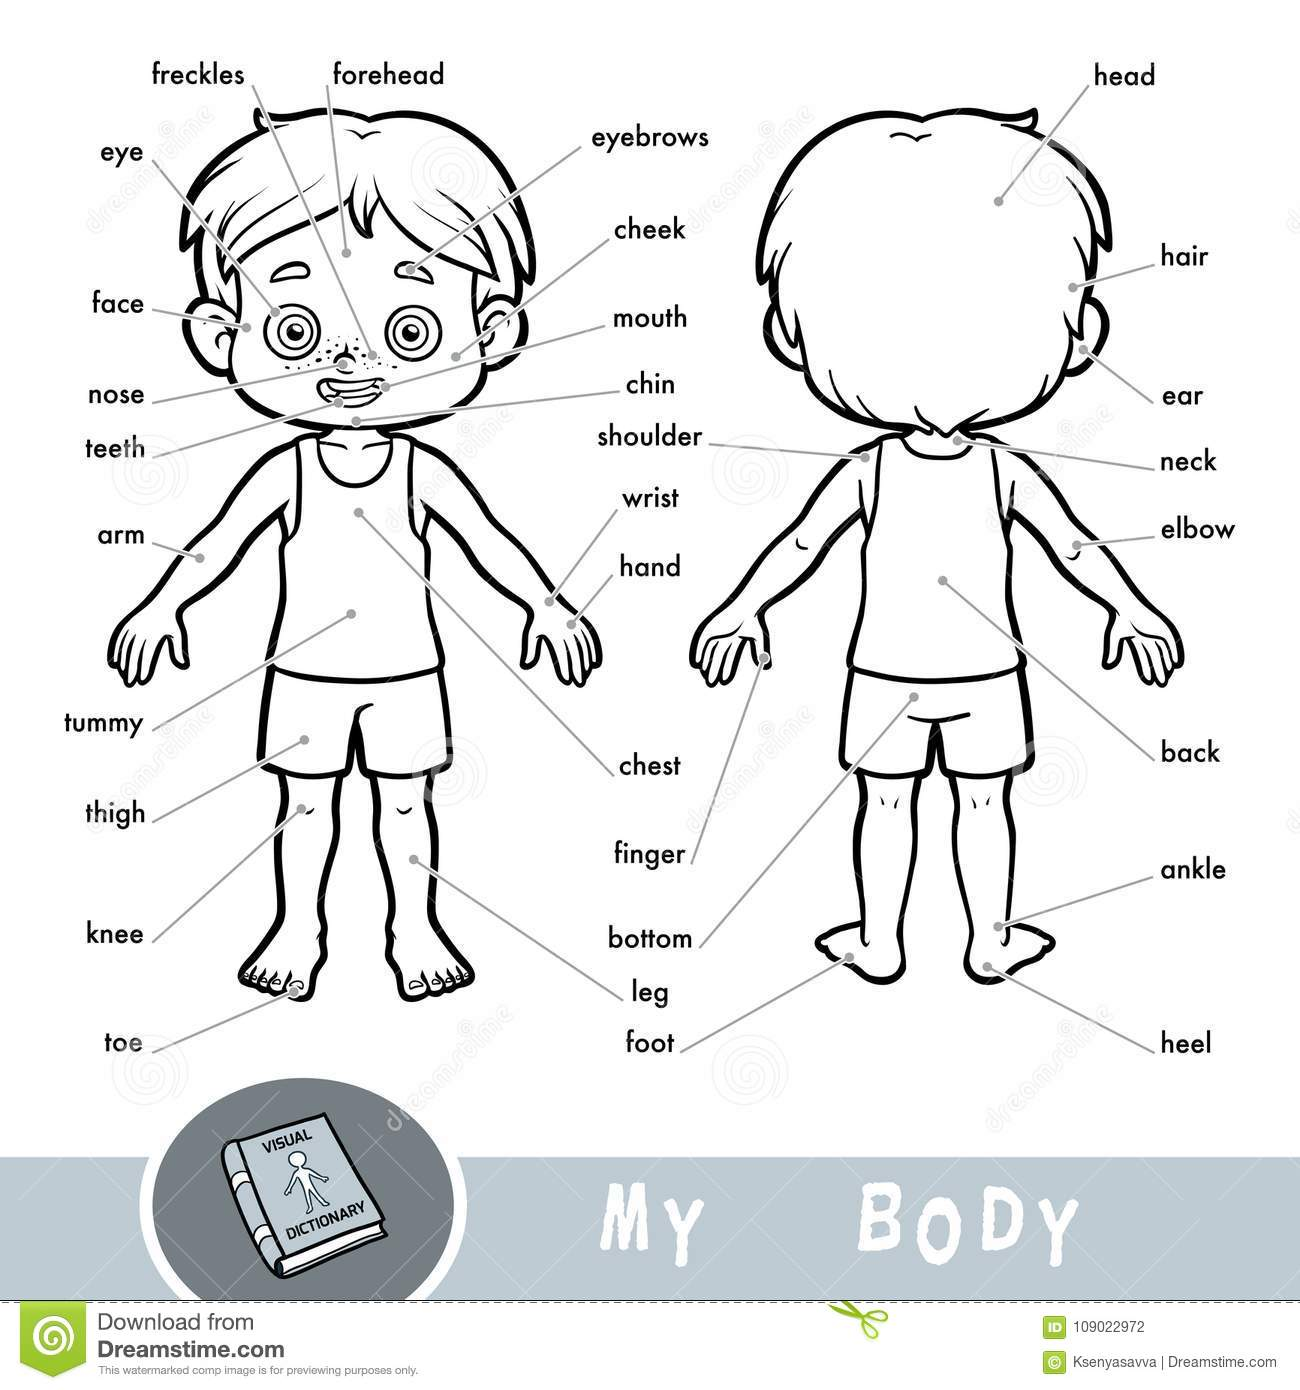 Visual Dictionary About The Human Body My Body Parts For